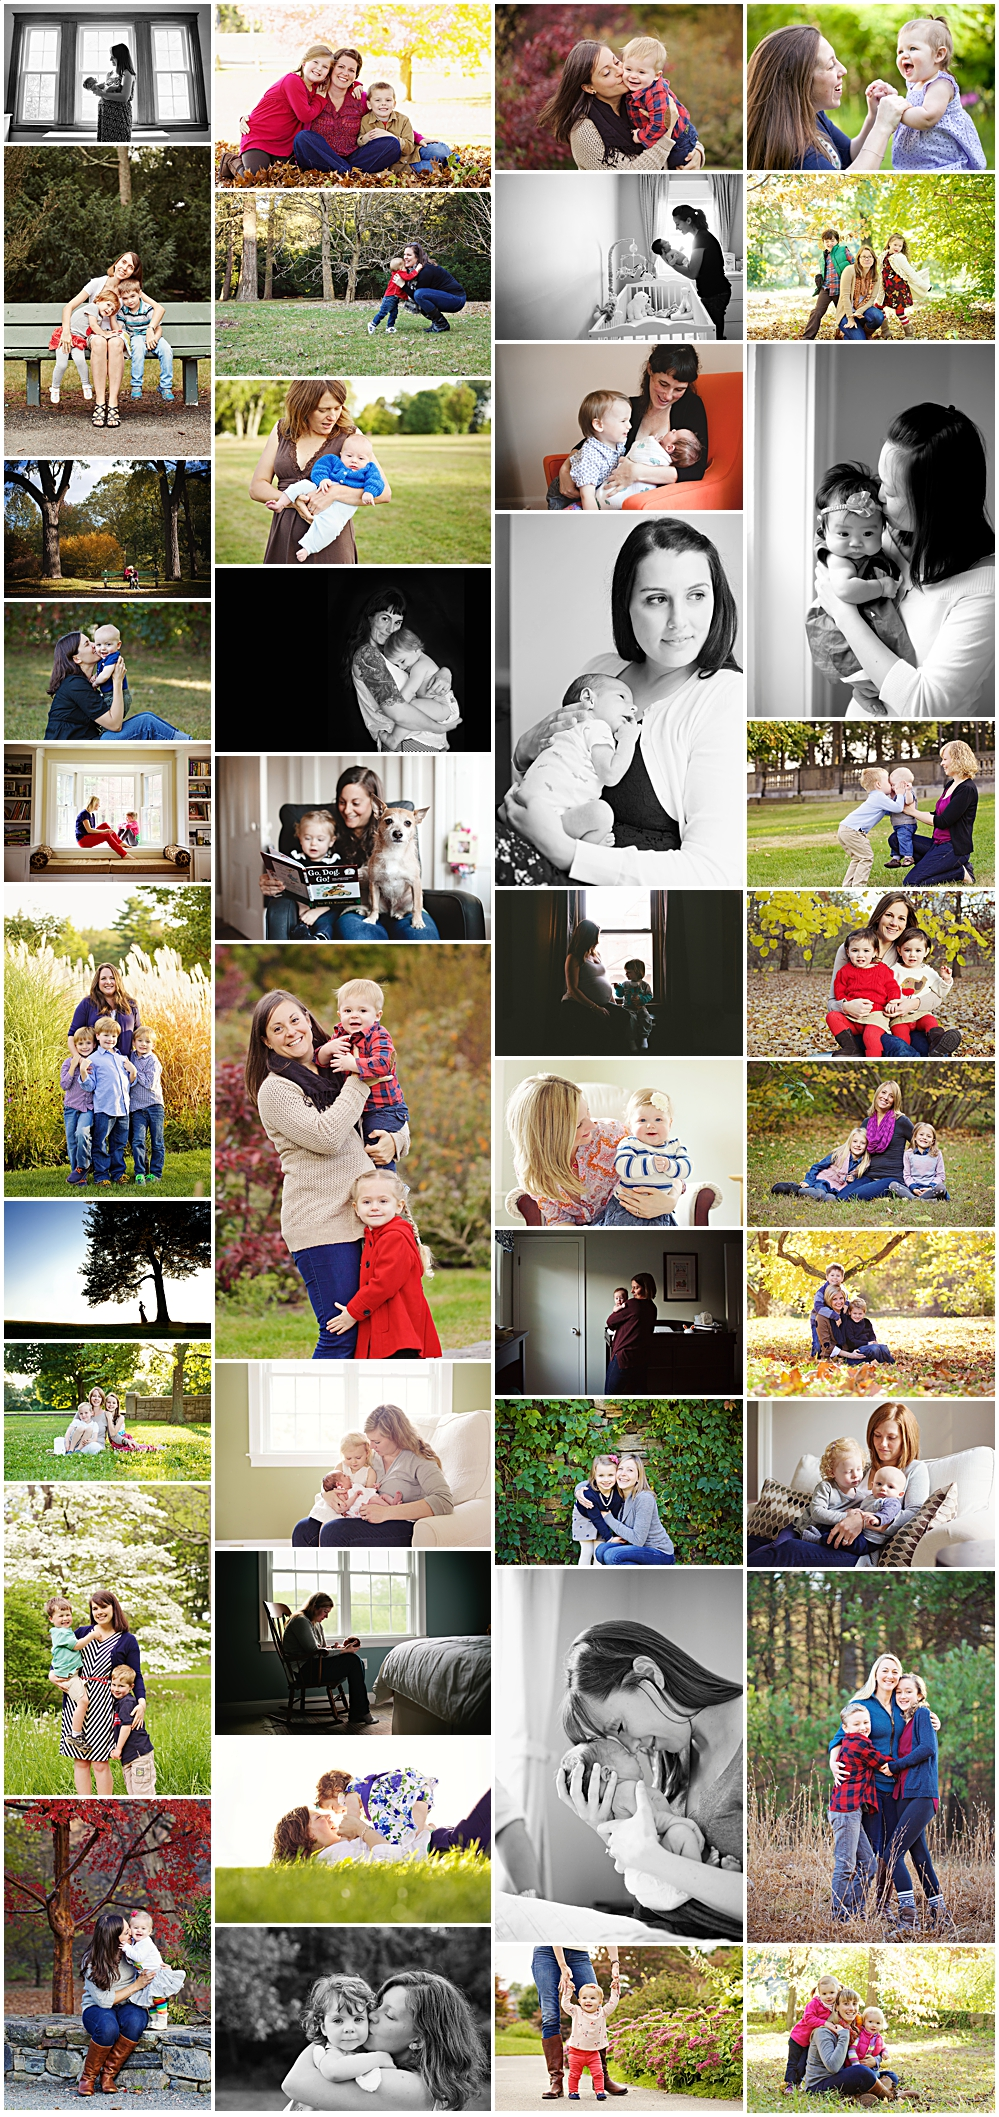 needham_family_photographer_1182